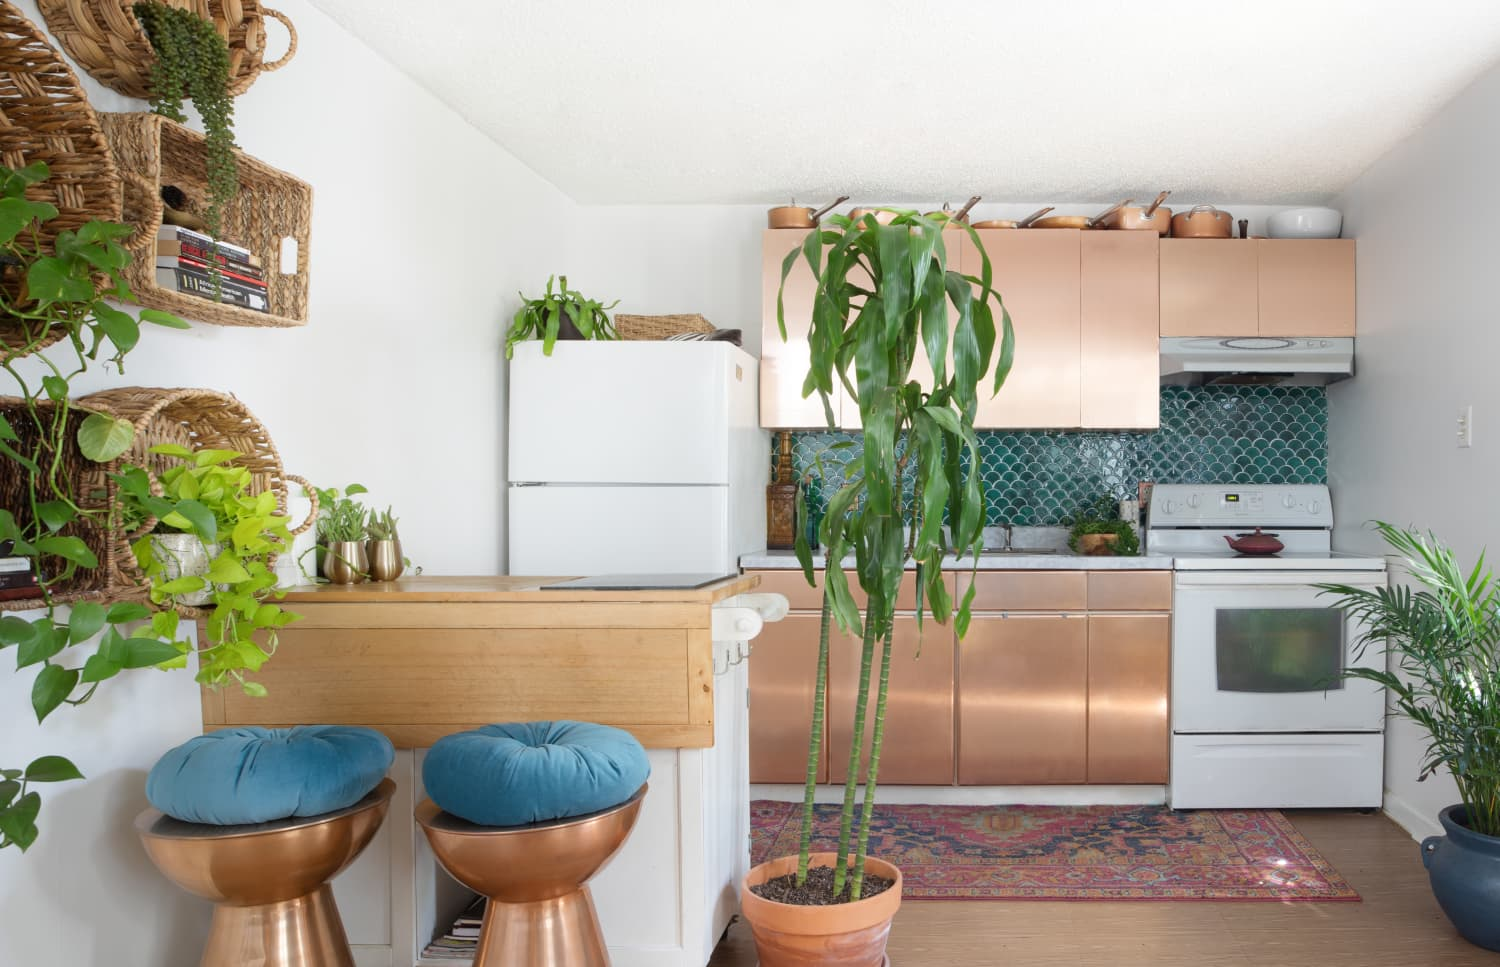 These Kitchens All Got Impressively Awesome Makeovers, Thanks to the Magic of Self-Adhesive Paper